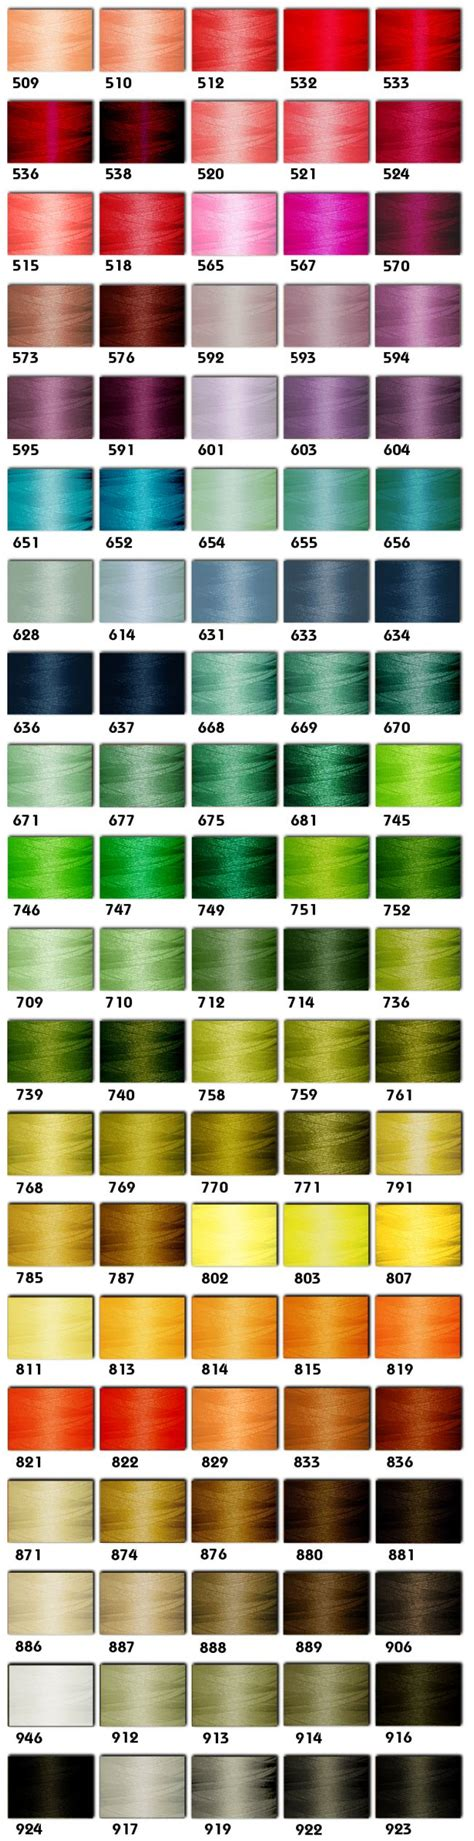 embroidex color chart embroidery thread of free embroidery patterns